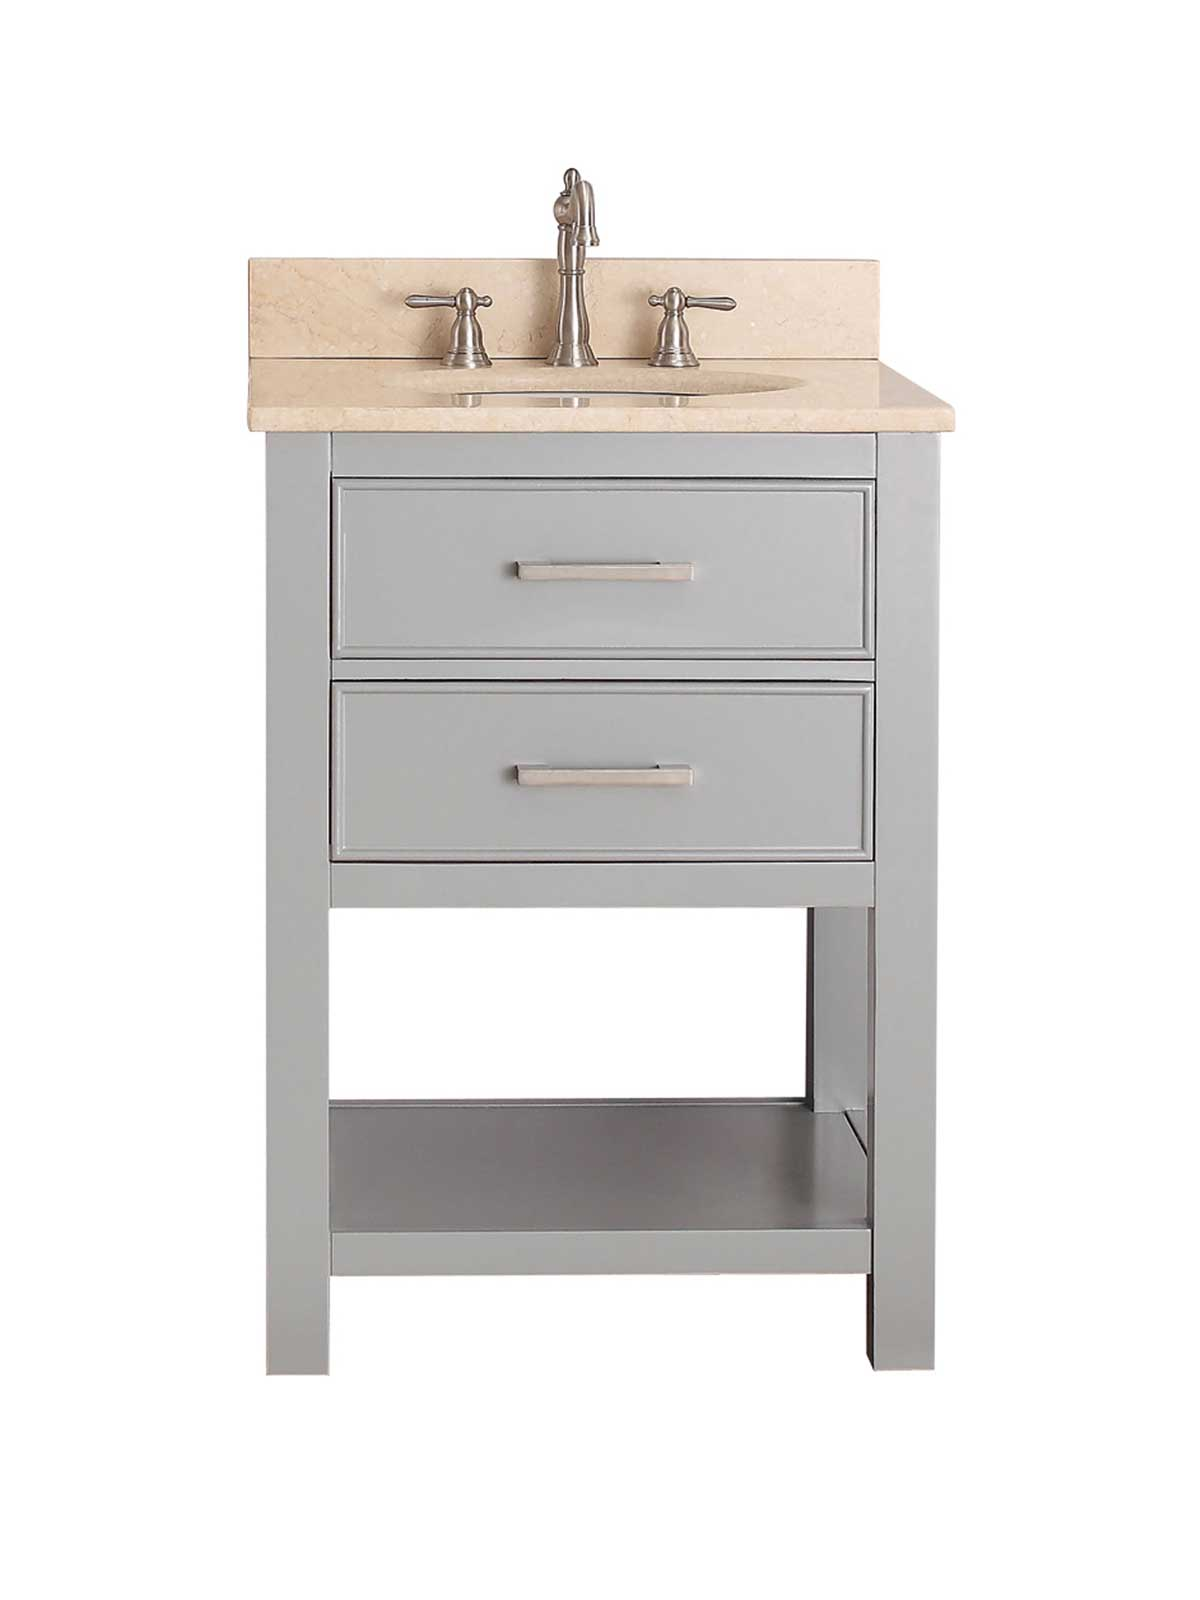 "25"" Begonia Single Bath Vanity - Chilled Gray with Galala Beige Marble Top"